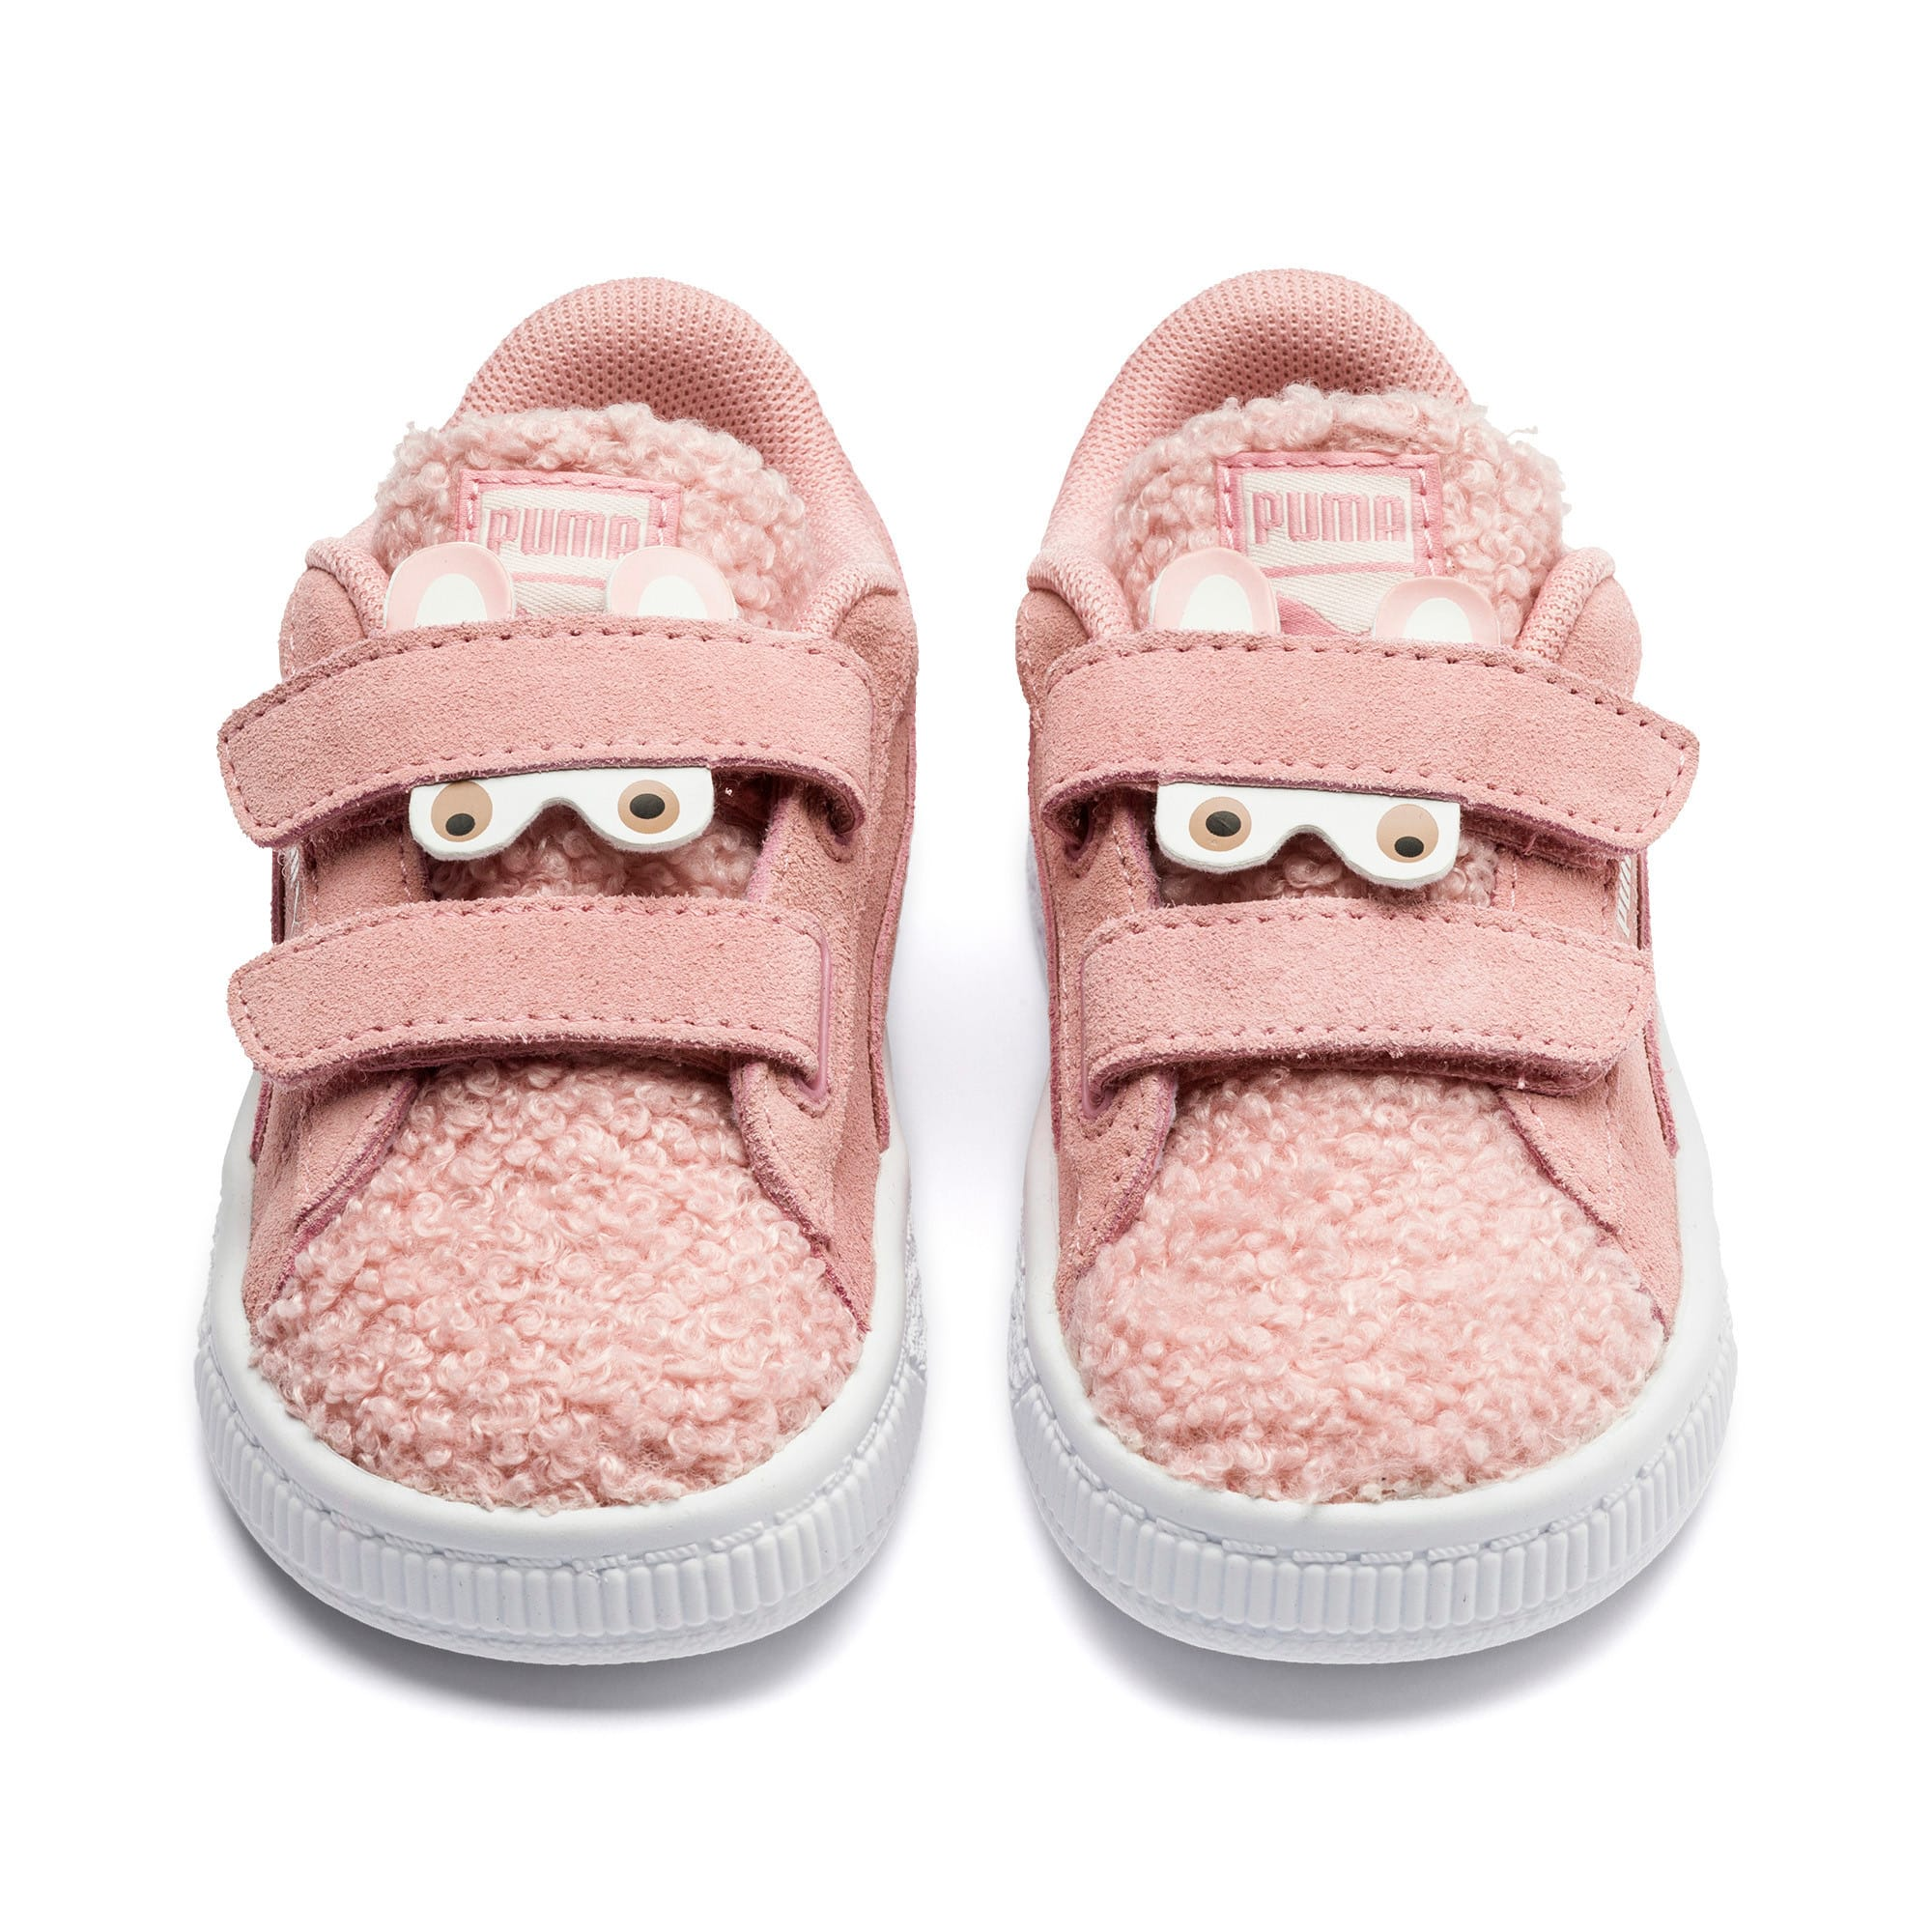 Thumbnail 7 of Suede Winter Monster Babies' Trainers, Bridal Rose-Mocha Mousse, medium